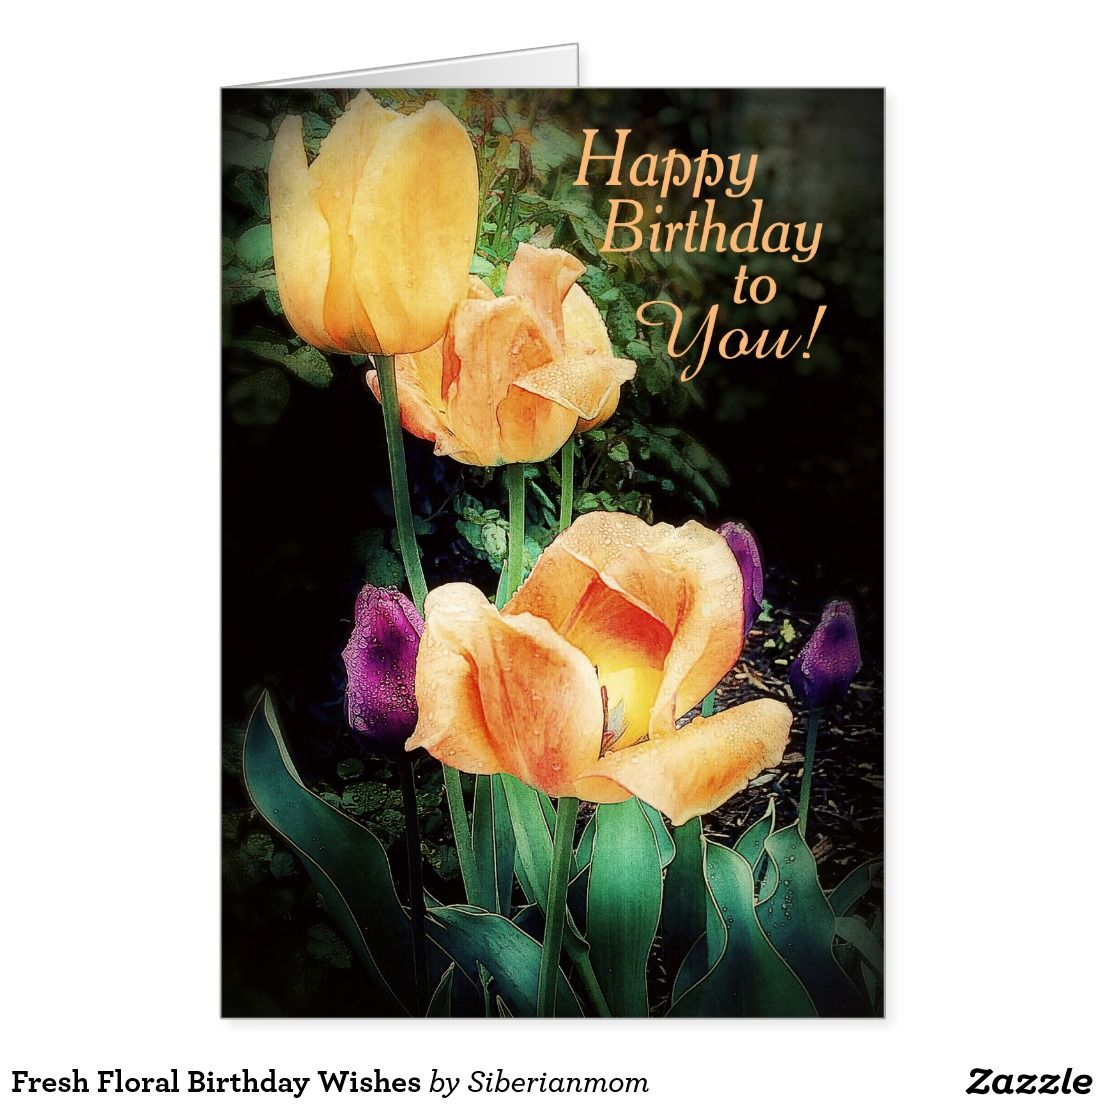 Fresh floral birthday wishes card just for her zazzle gifts fresh floral birthday wishes card izmirmasajfo Images